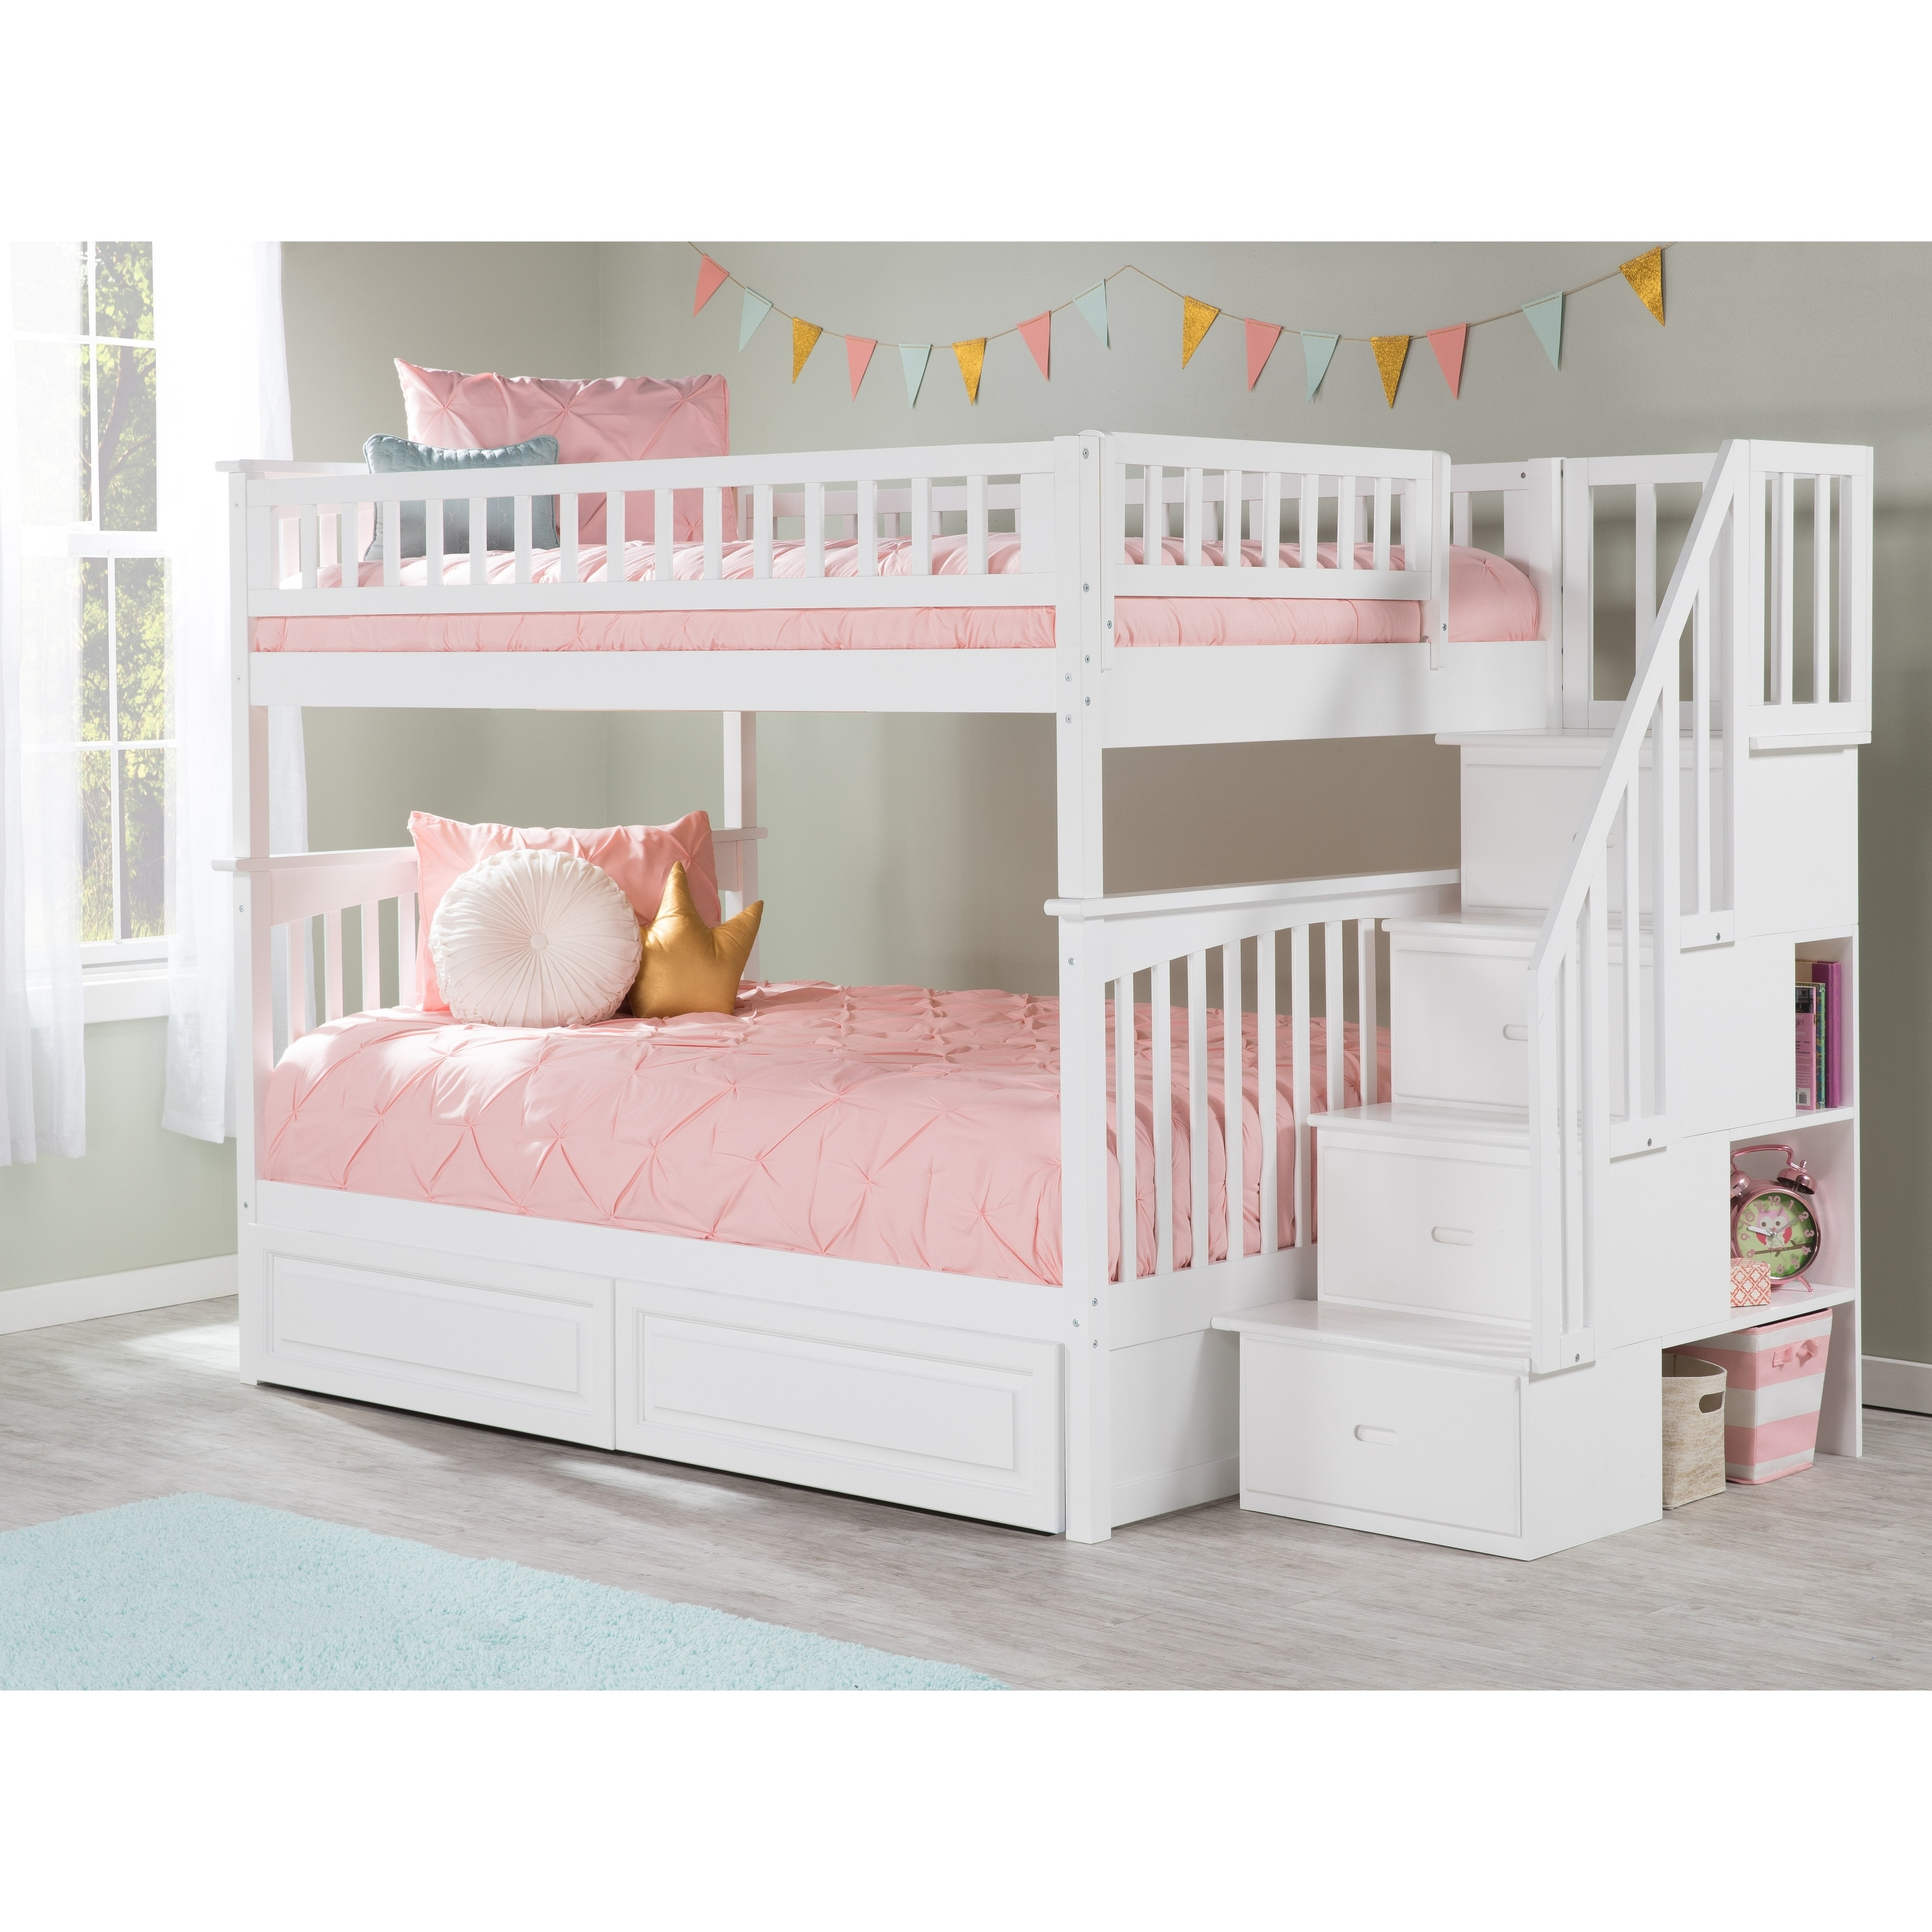 Shop Columbia Staircase Bunk Bed Full Over Full With 2 Raised Panel